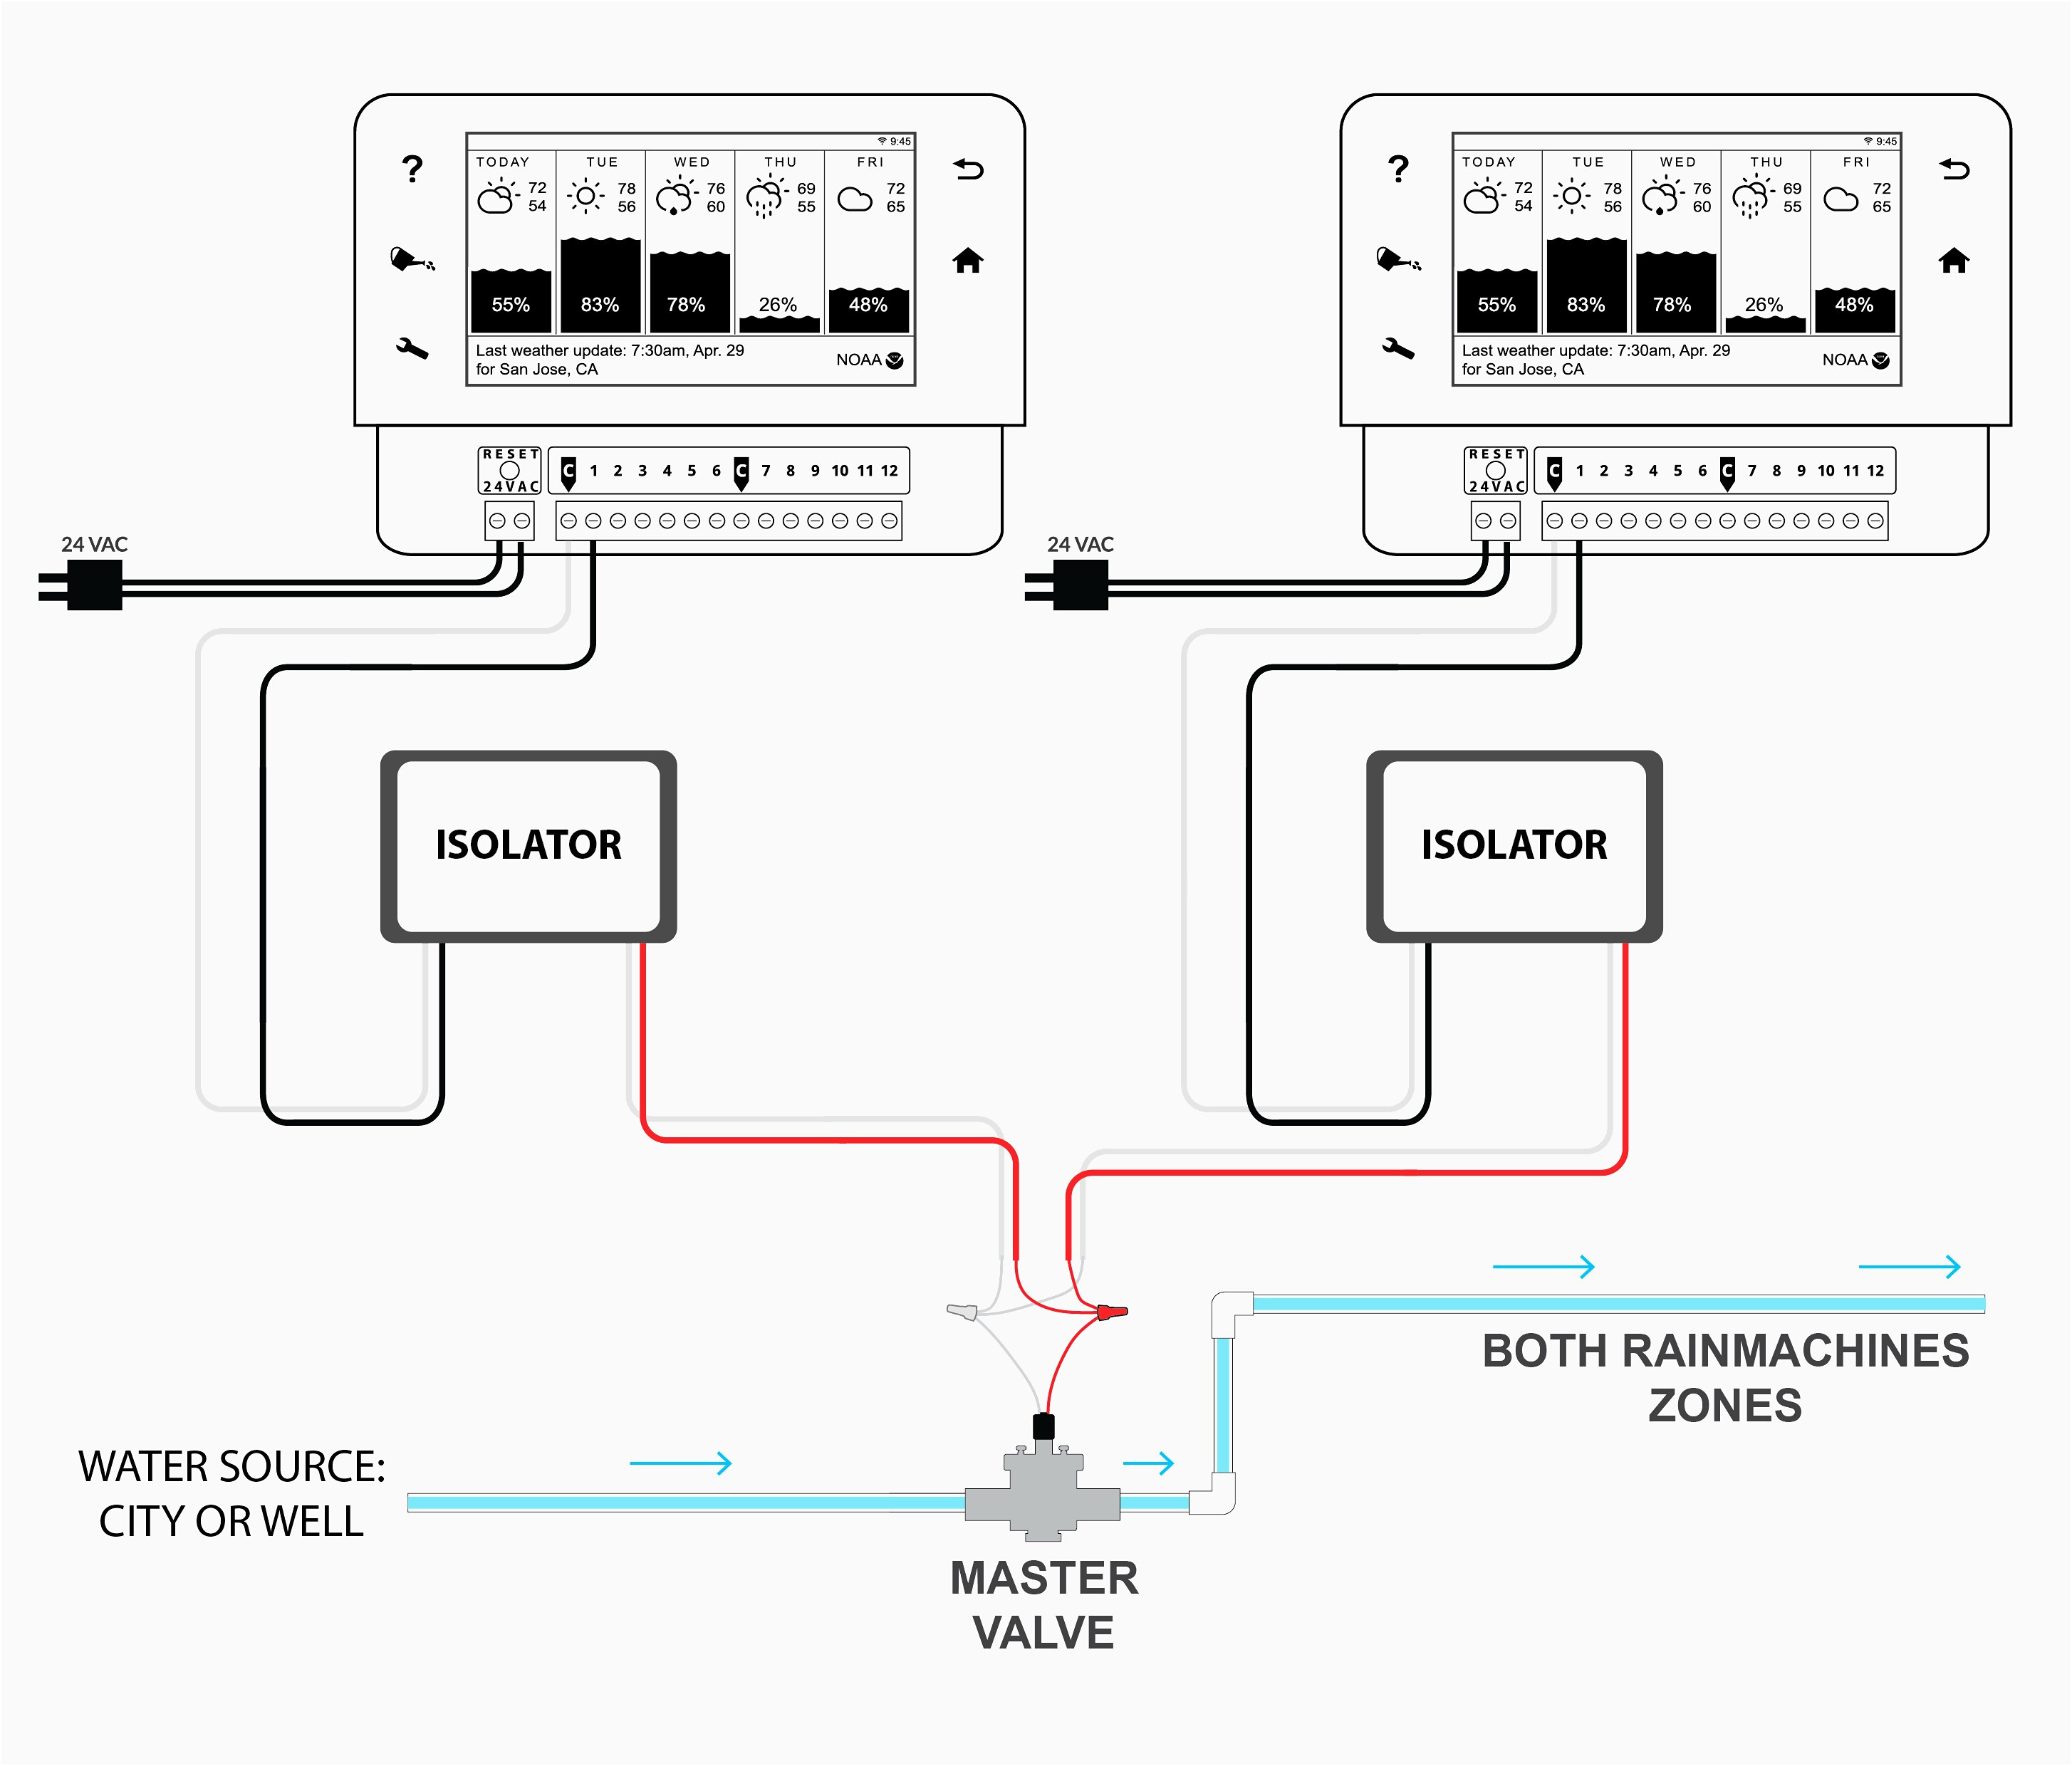 speaker selector switch wiring diagram Collection-Speaker Wiring Diagram Series Vs Parallel Save Speaker Selector Switch Wiring Diagram Wiring Diagram 3-i